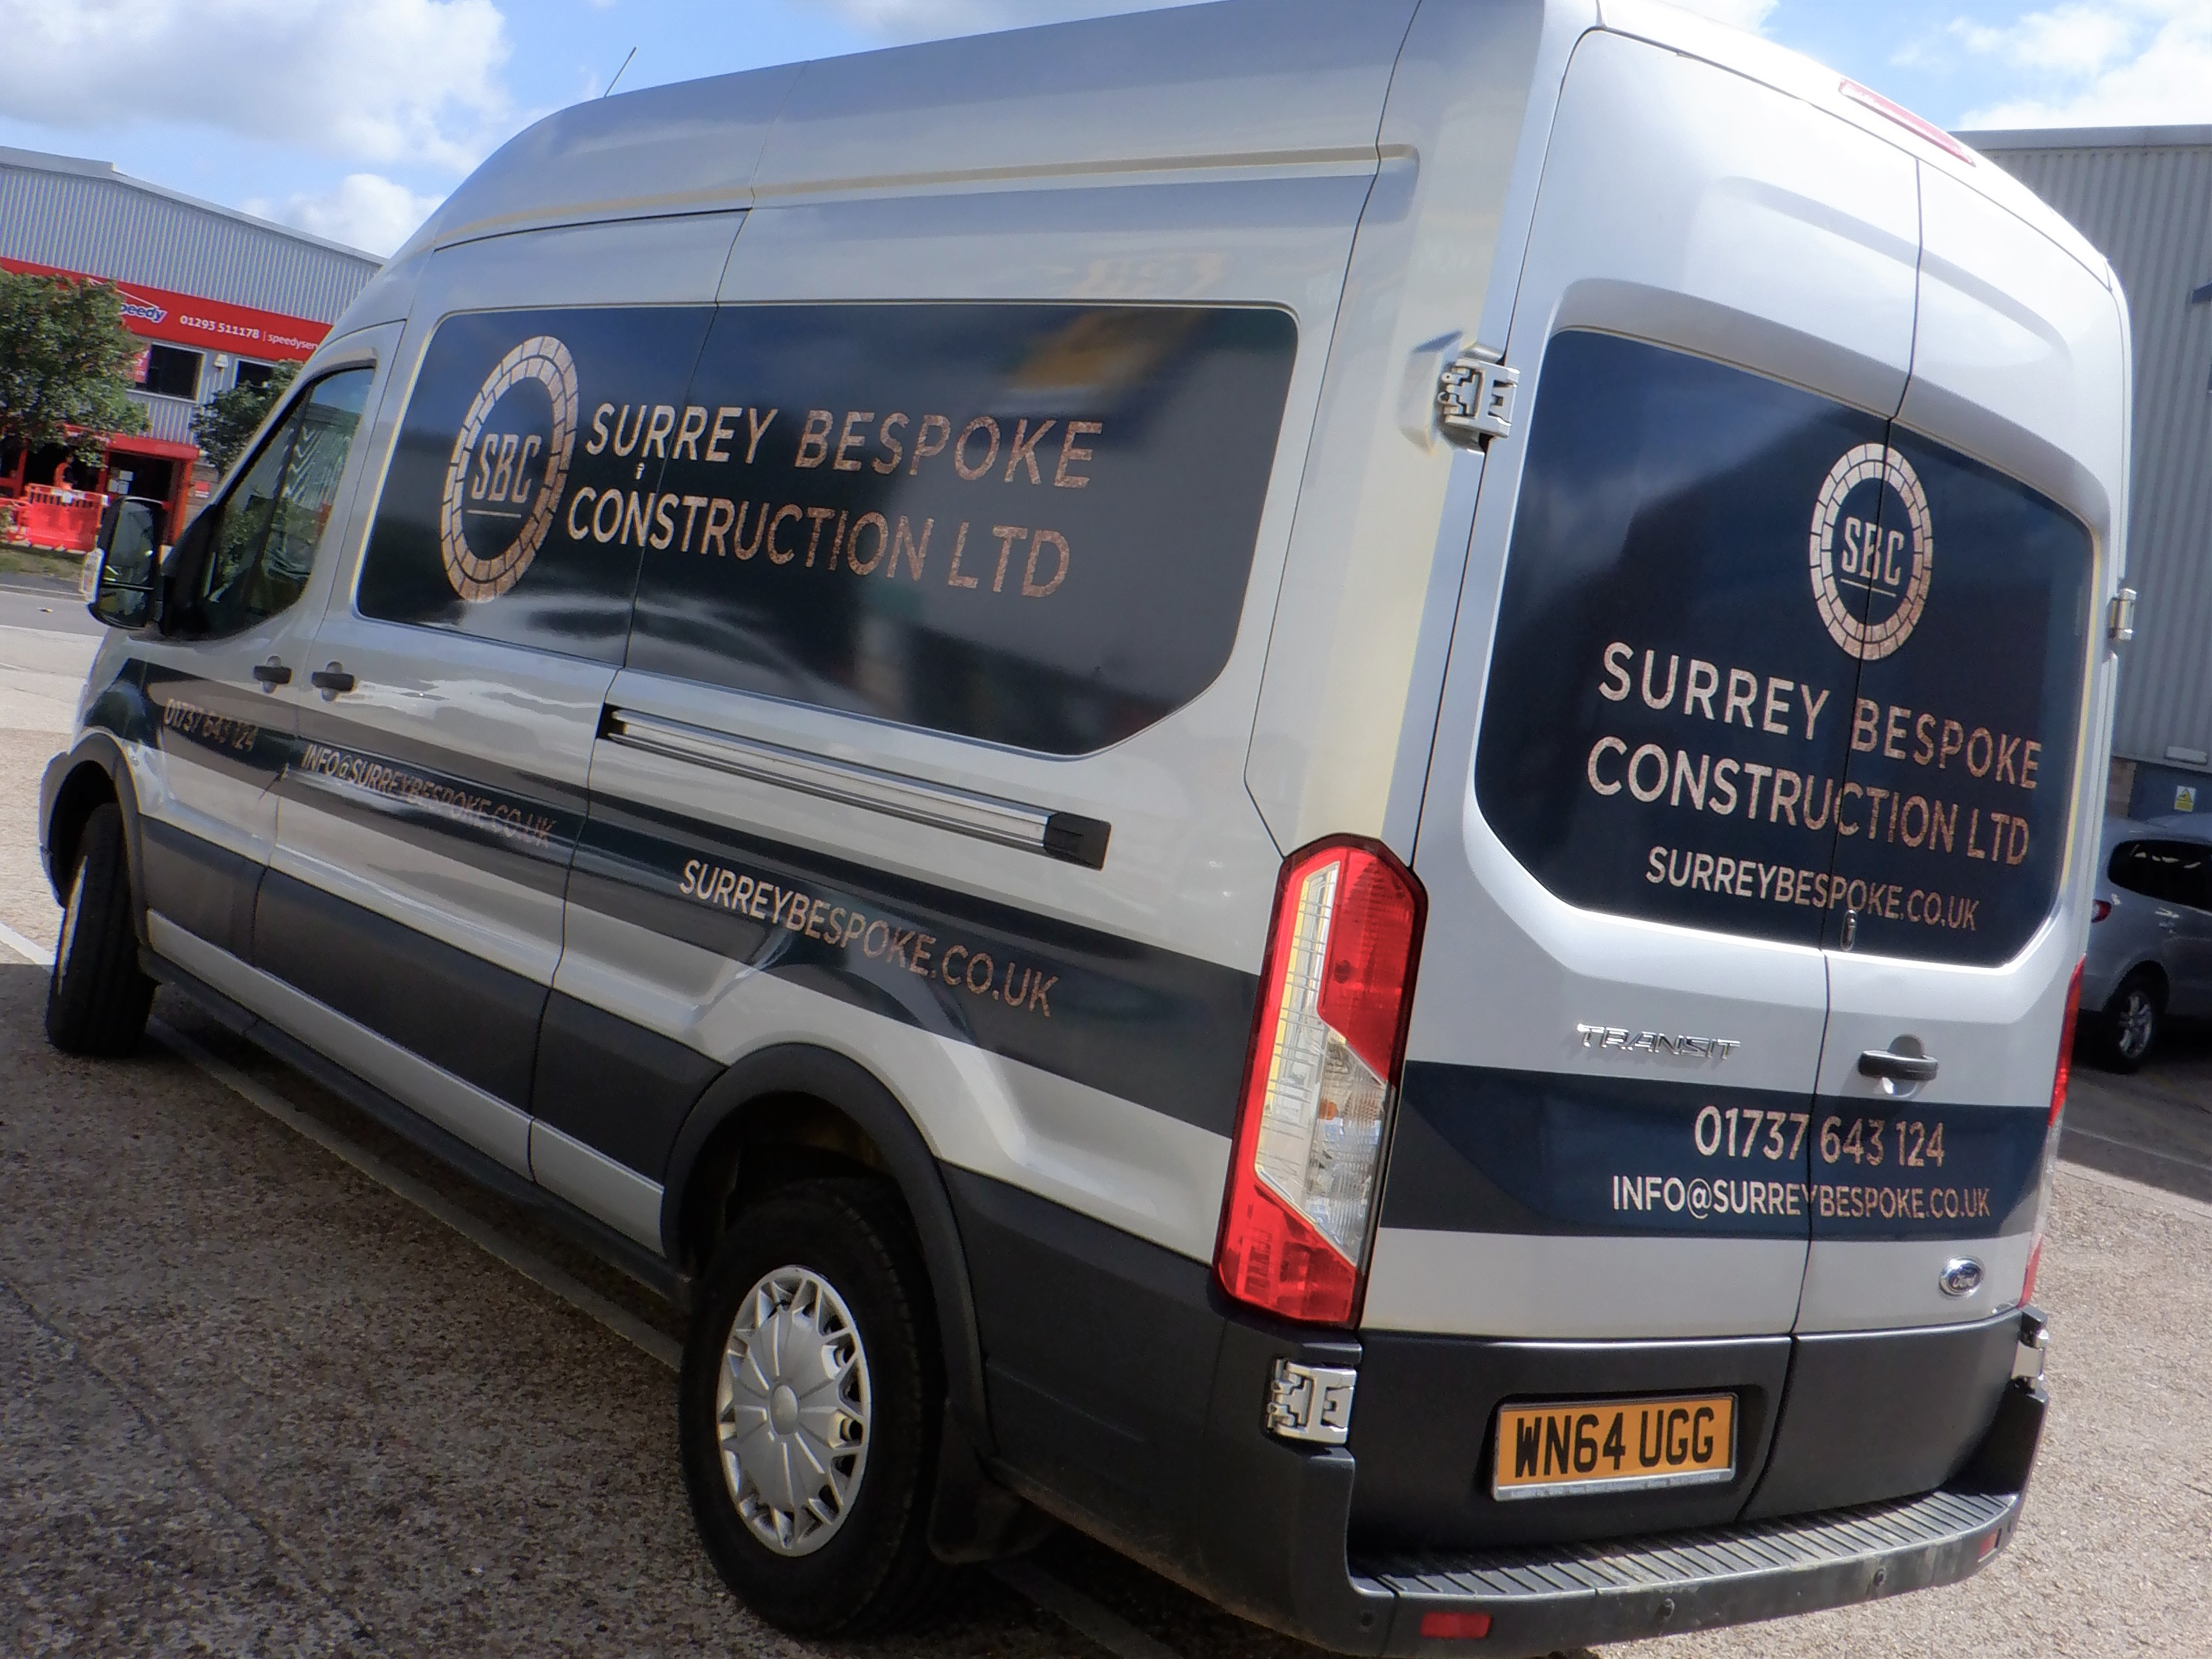 SURREY BESPOKE CONSTRUCTION